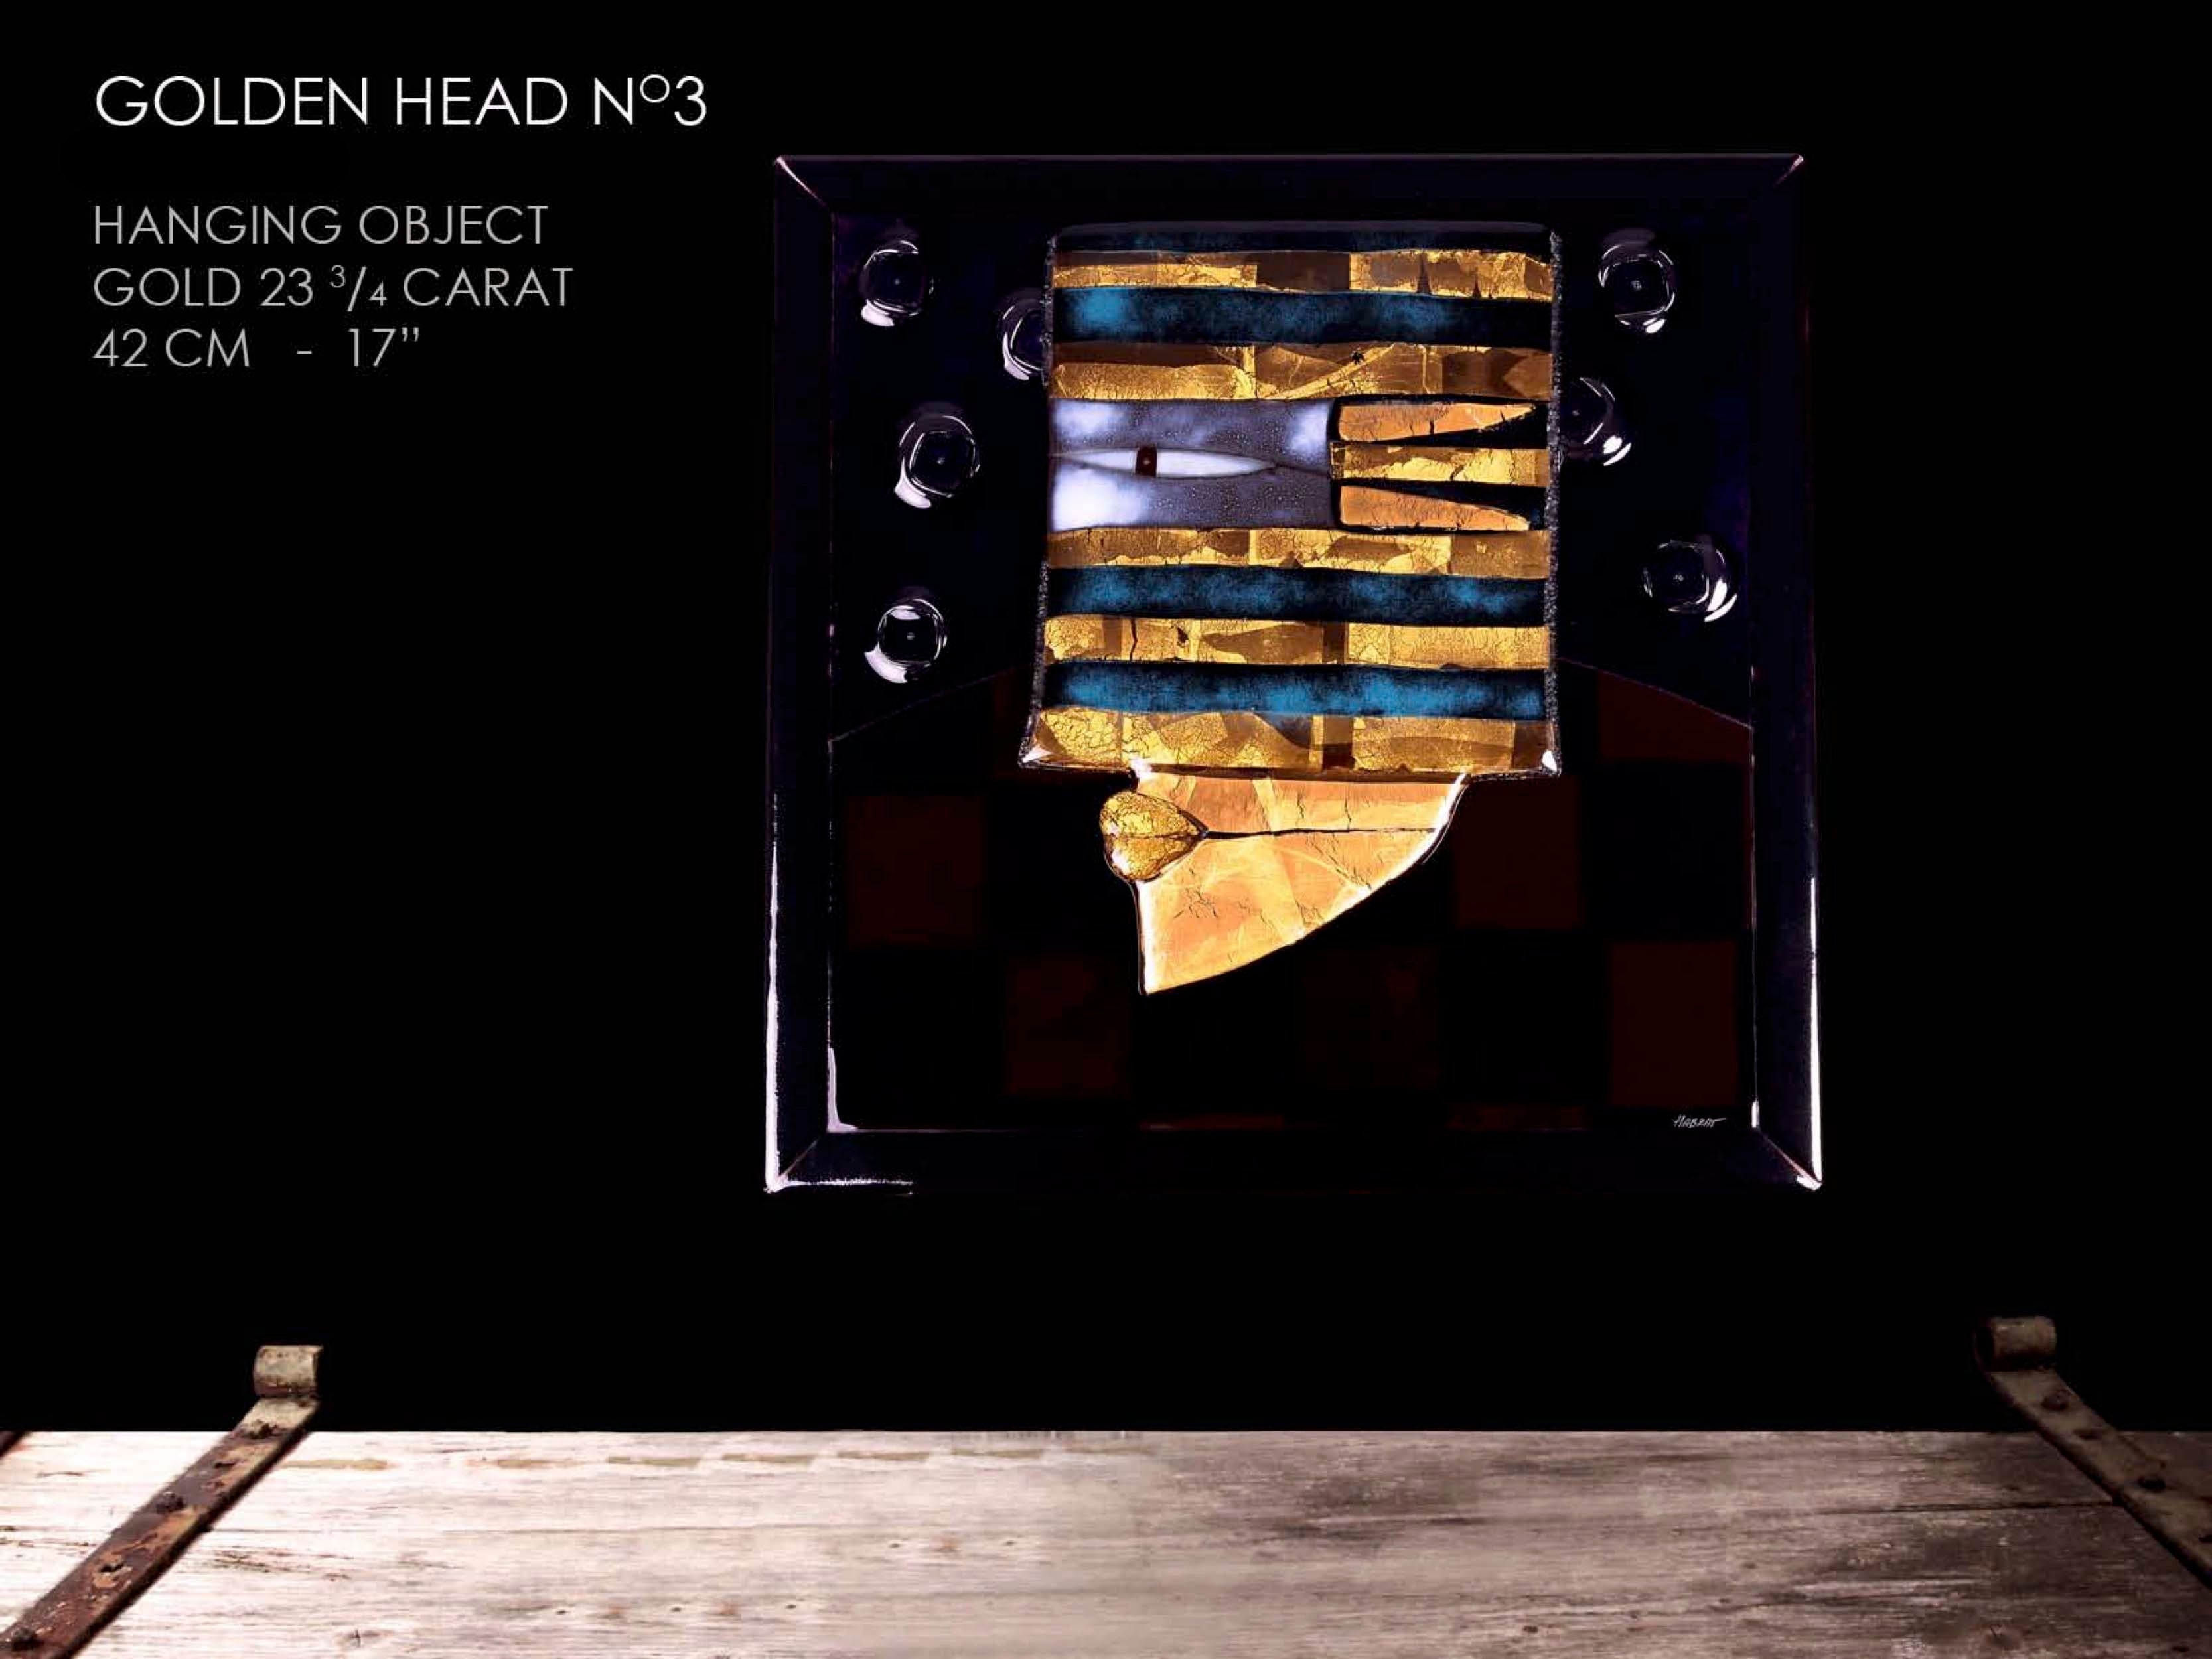 Golden Head (wall picture) with 24 carat gold. Luxury designs glass wall picture. Handcrafted modern glass art.